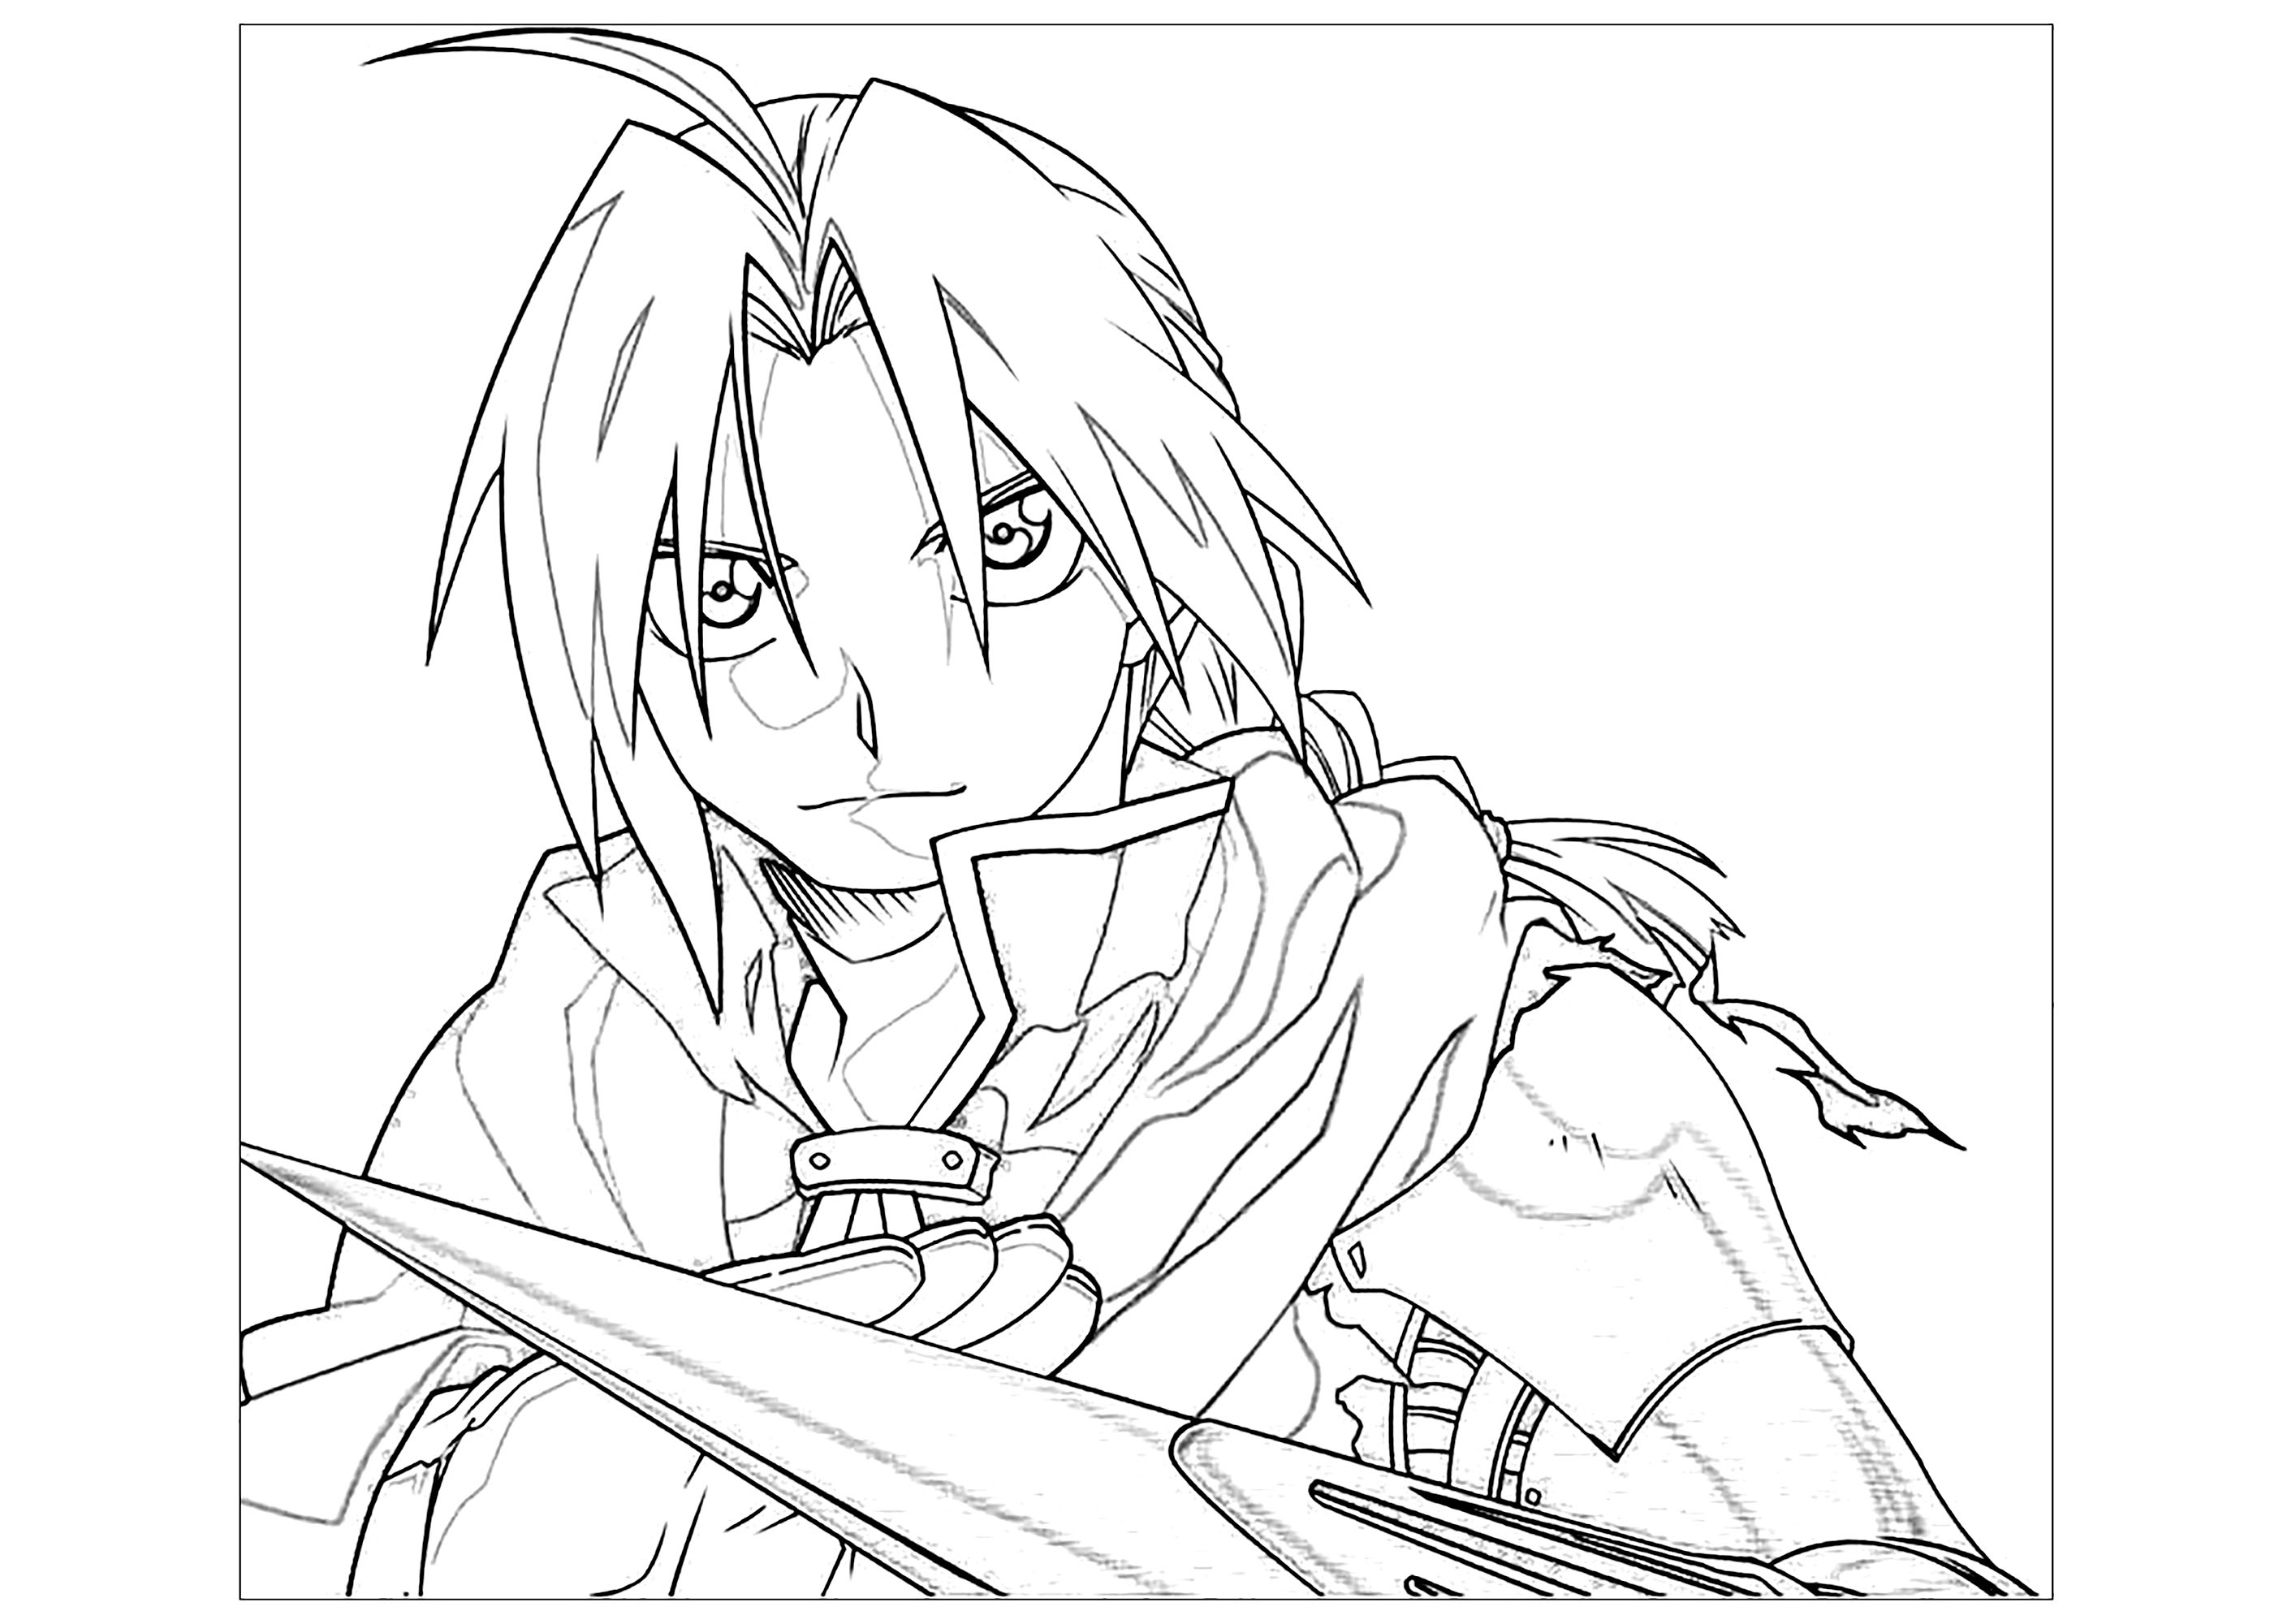 Funny Full Metal Alchemist coloring page for kids